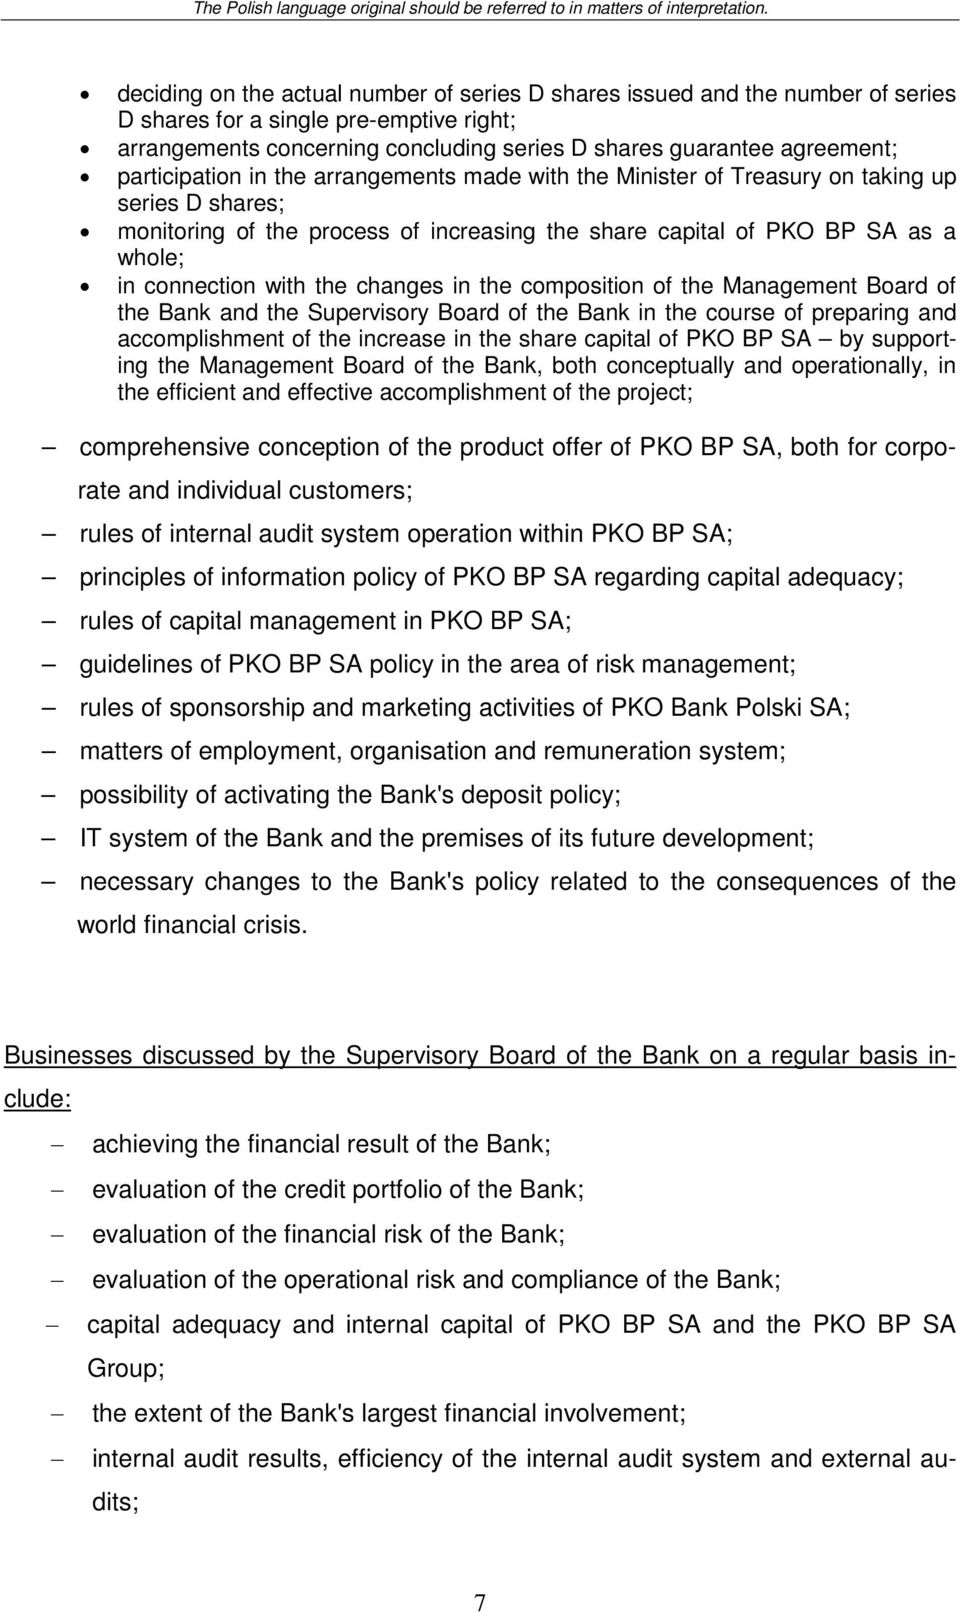 with the changes in the composition of the Management Board of the Bank and the Supervisory in the course of preparing and accomplishment of the increase in the share capital of PKO BP SA by